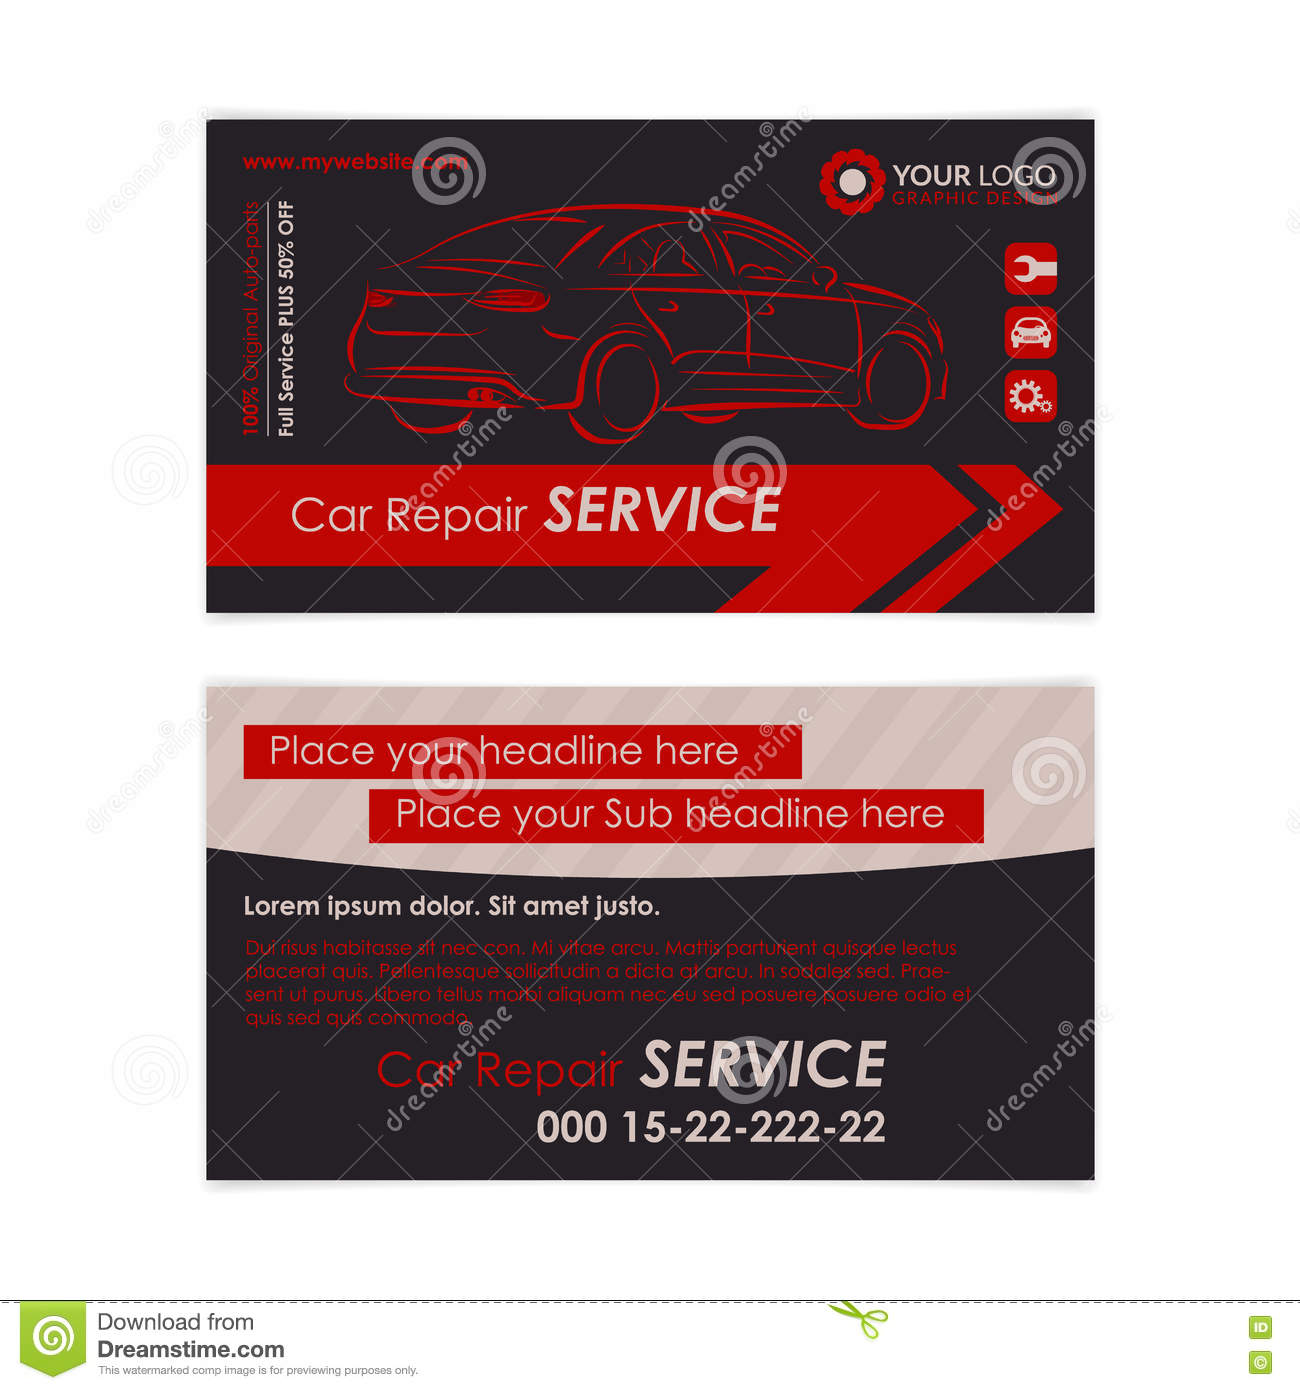 Auto repair business card template create your own business cards create your own business cards idea graphic royalty free vector reheart Gallery